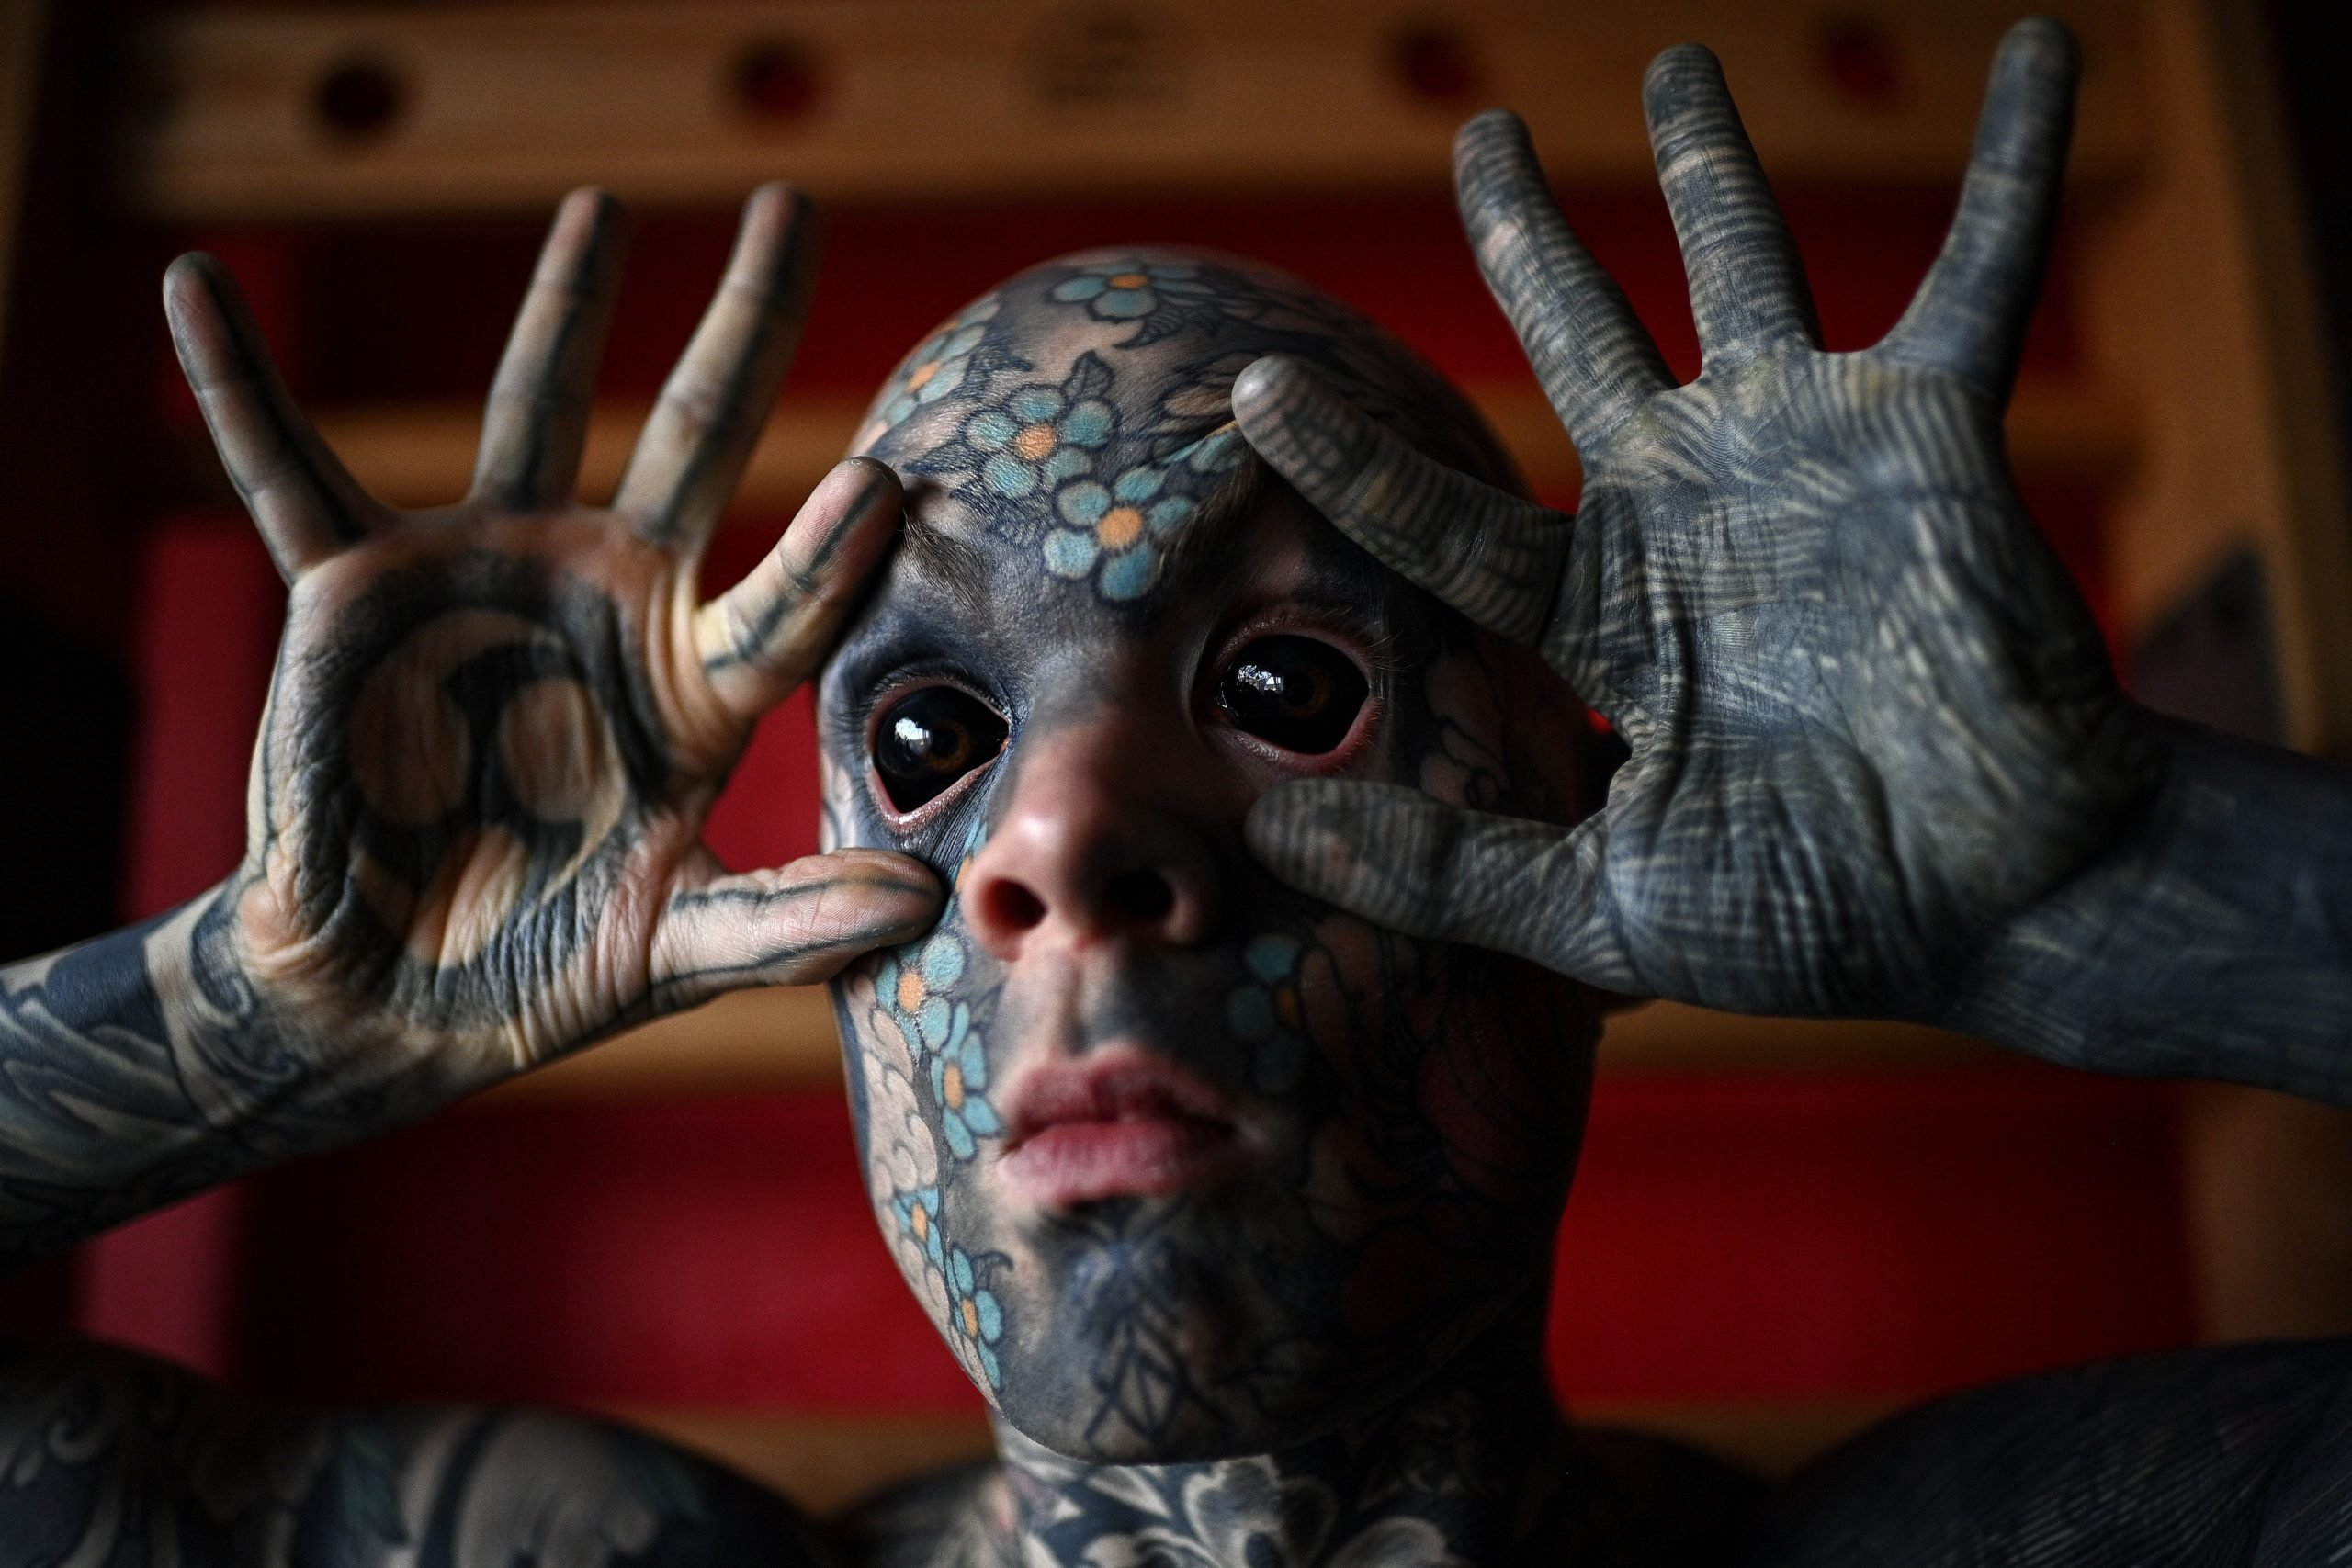 TOPSHOT - French primary school teacher and tattoo enthusiast Sylvain Helaine, known as Freaky Hoody, poses during a photo session in Palaiseau, a south of Paris suburb, on September 22, 2020. (Photo by Christophe ARCHAMBAULT / AFP) (Photo by CHRISTOPHE ARCHAMBAULT/AFP via Getty Images)